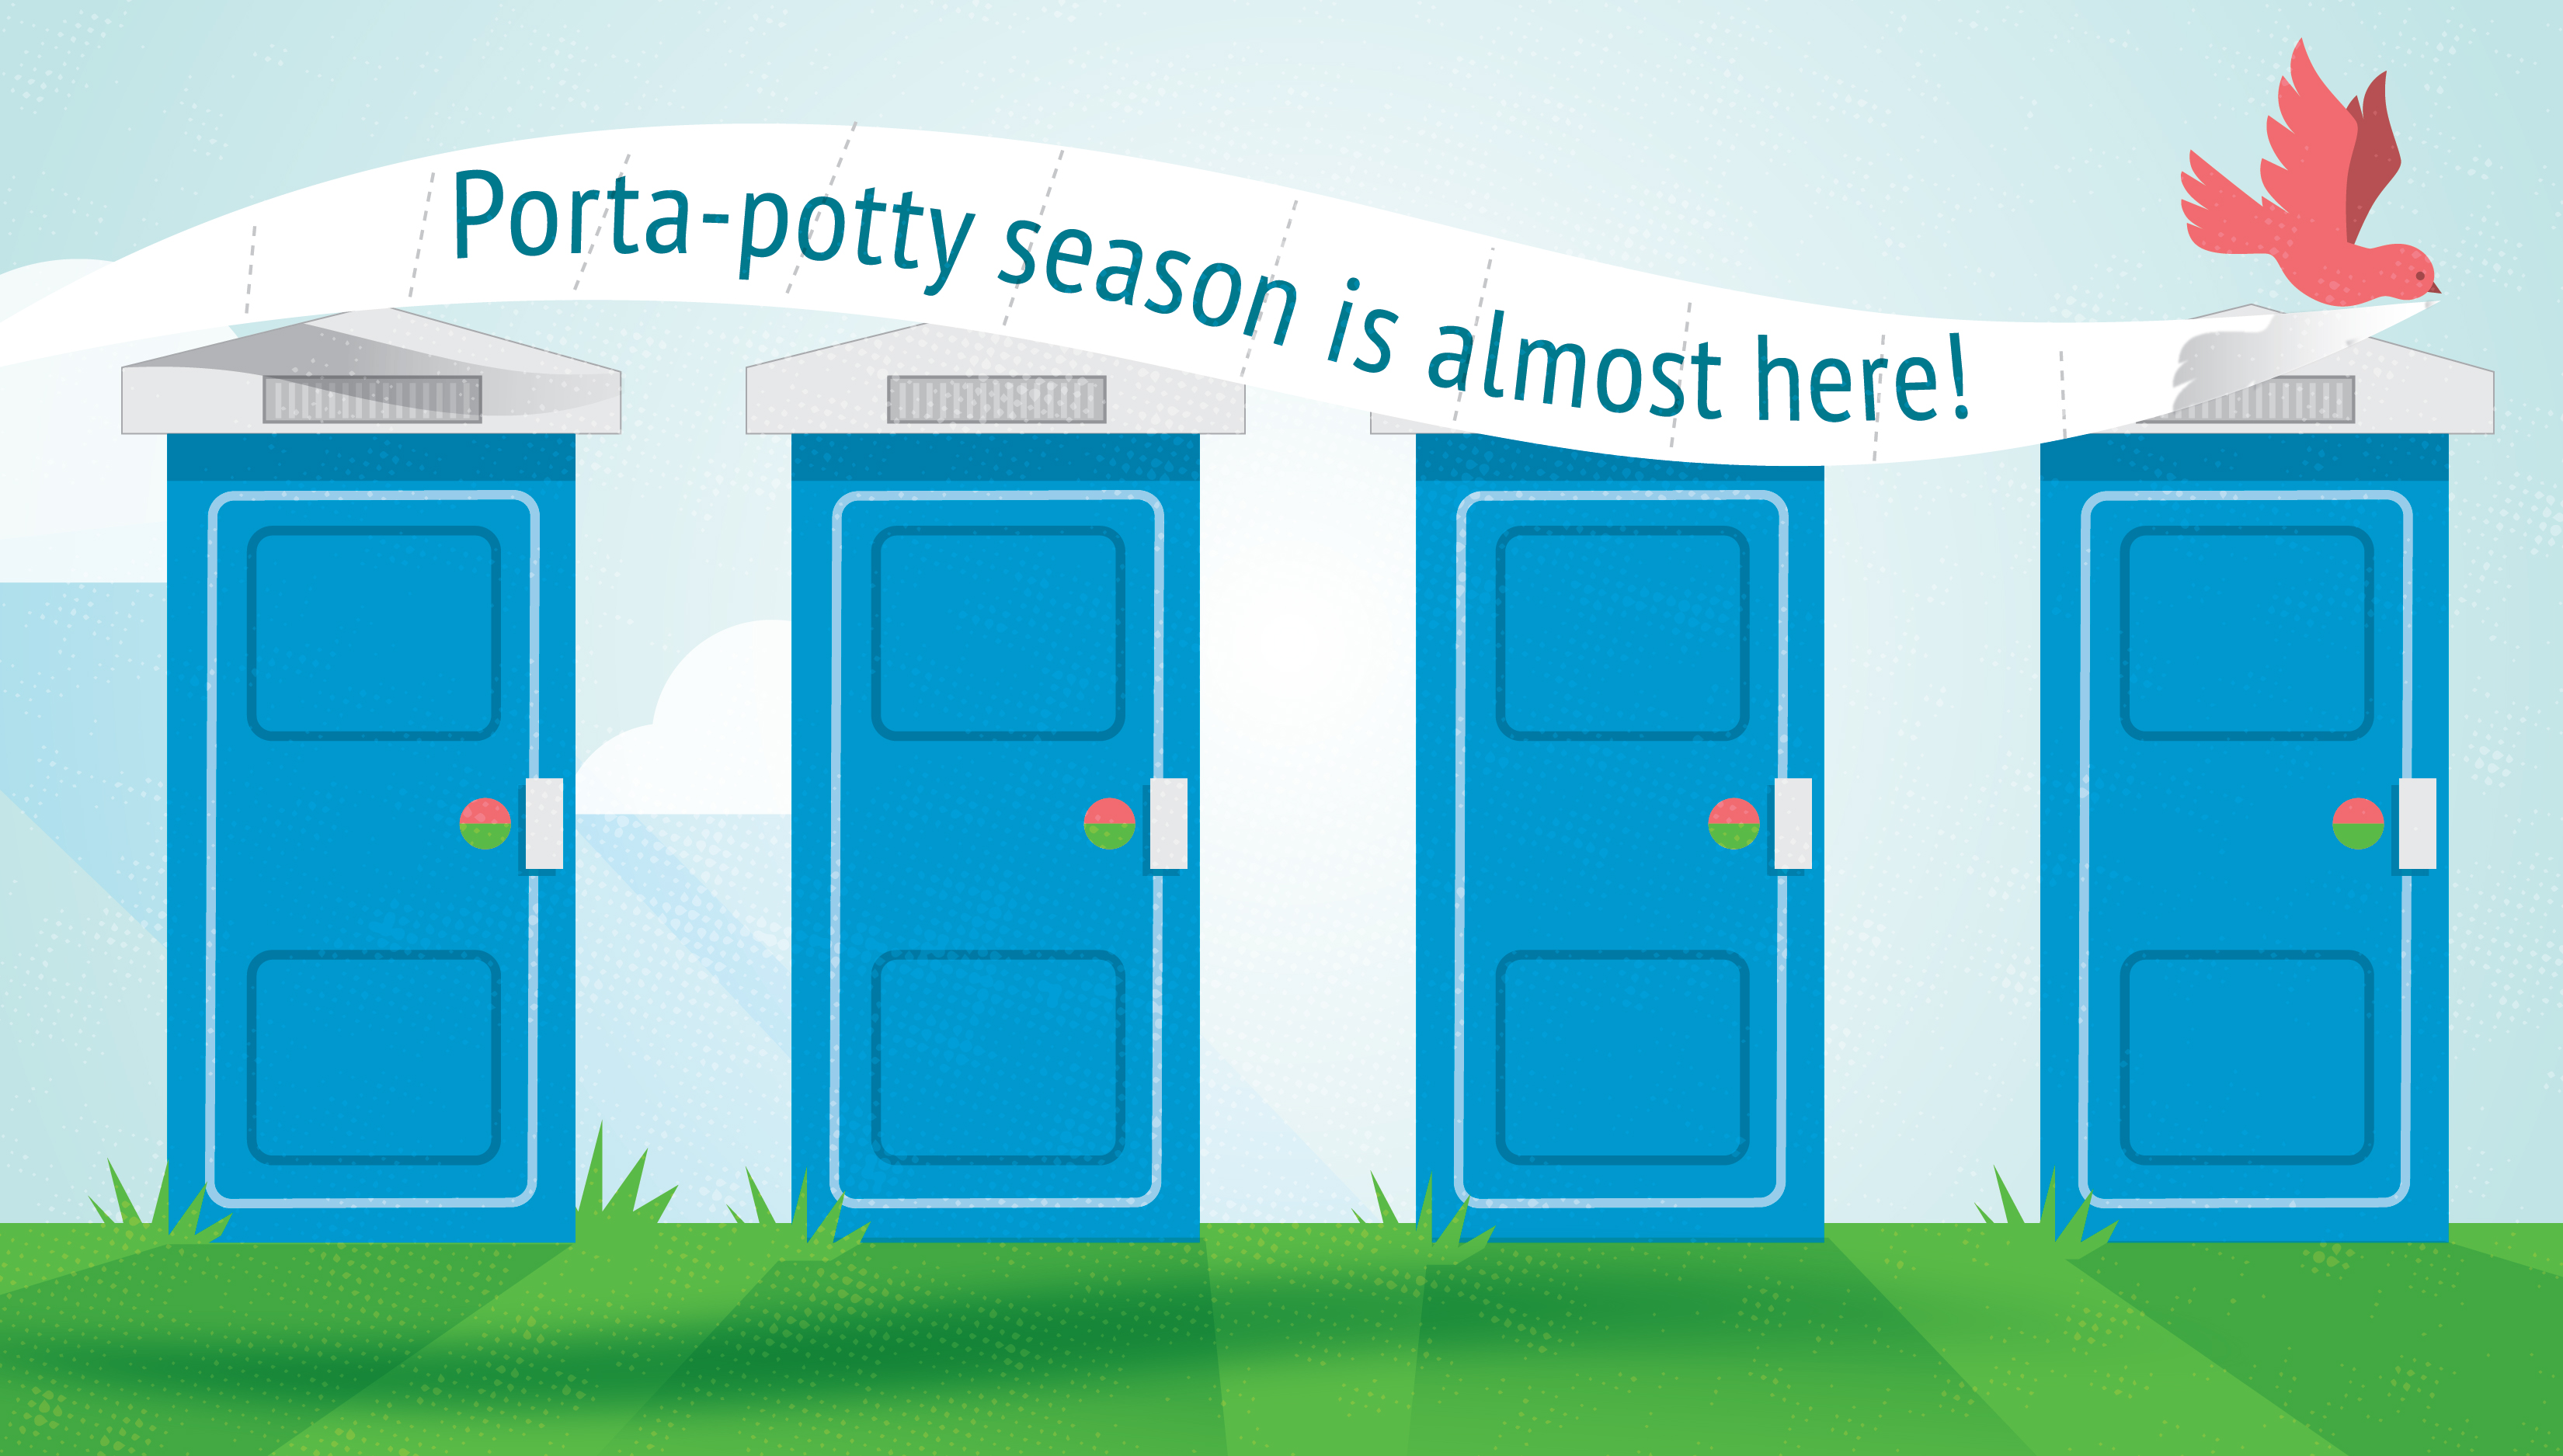 porta-potty season is almost here graphic